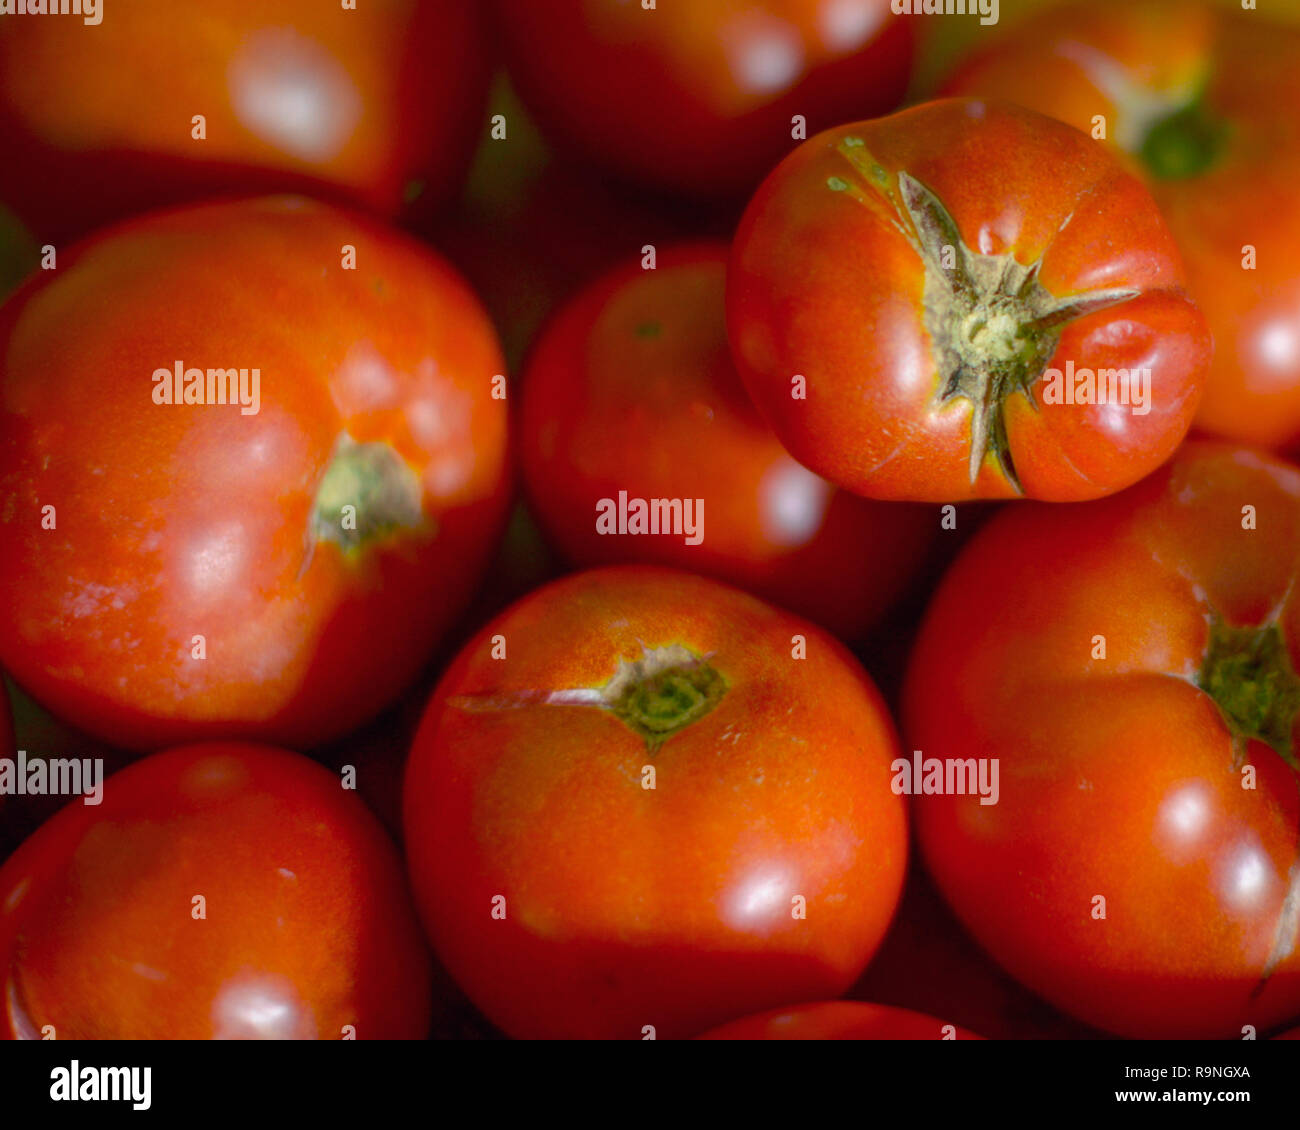 Tomato  seconds in a pile - Stock Image